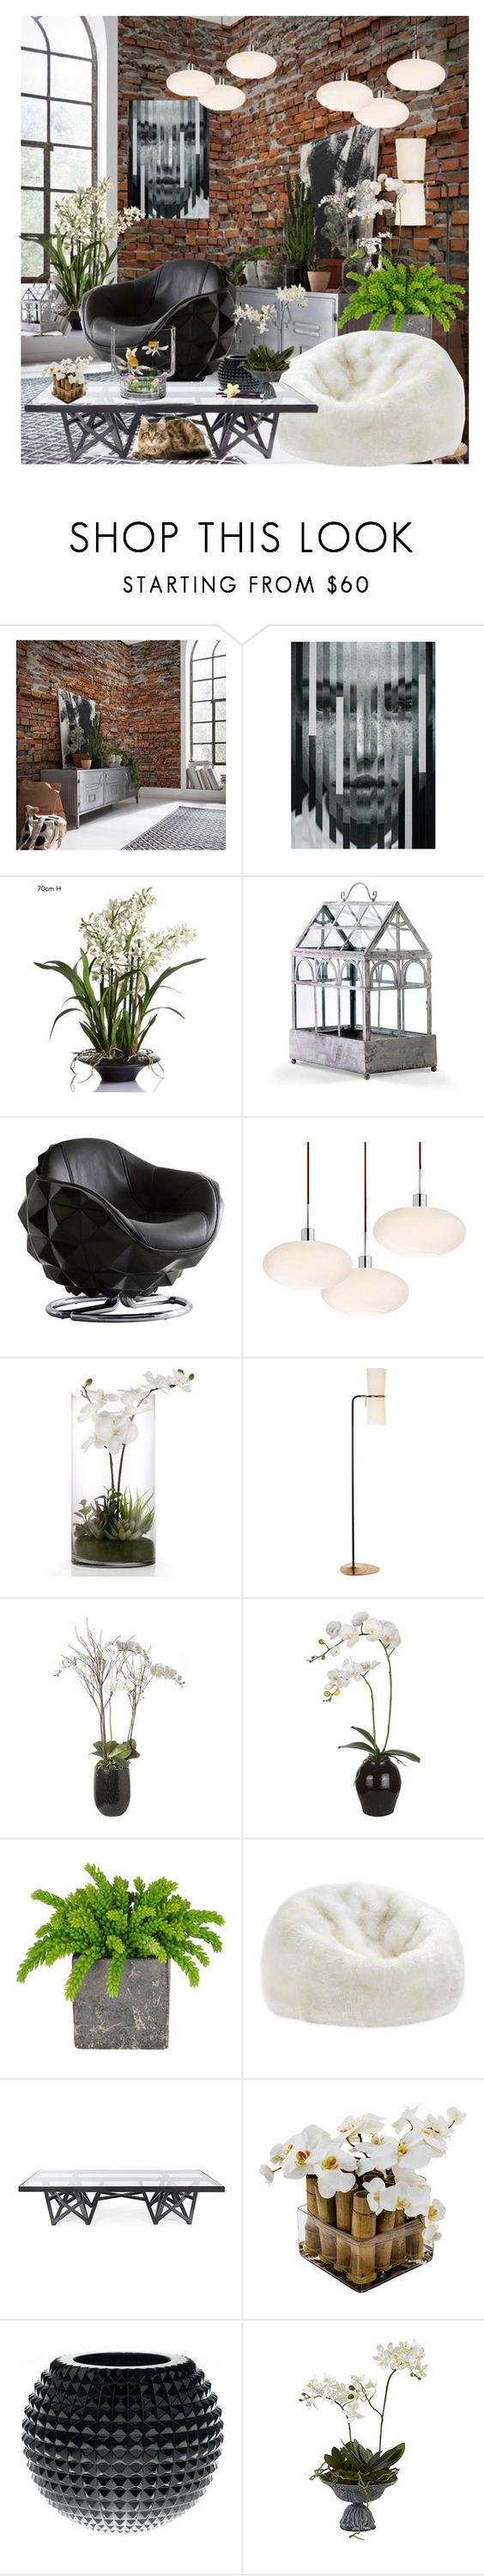 """The orchid Room"" by frenchfriesblackmg ❤ liked on Polyvore featuring interior, interiors, interior design, home, home decor, interior decorating, Komar, EMAC & LAWTON, Cyan Design and Andrew Martin"